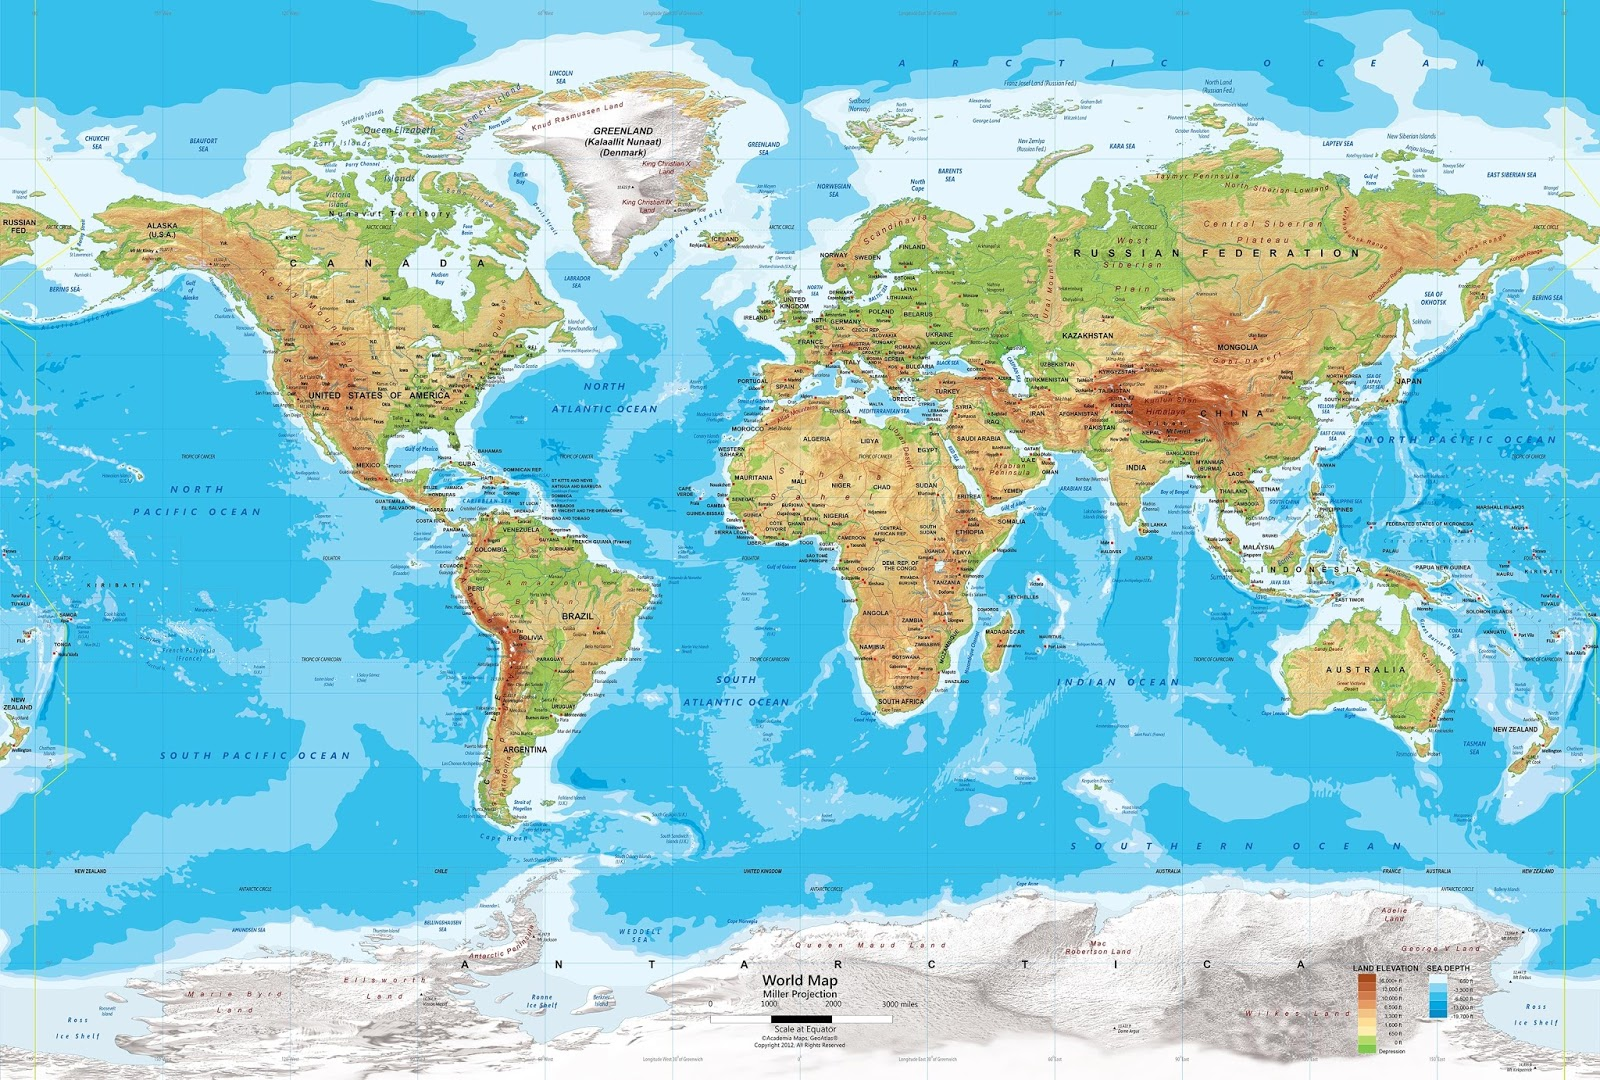 World map political and physical learning geology physical map of the world gumiabroncs Gallery